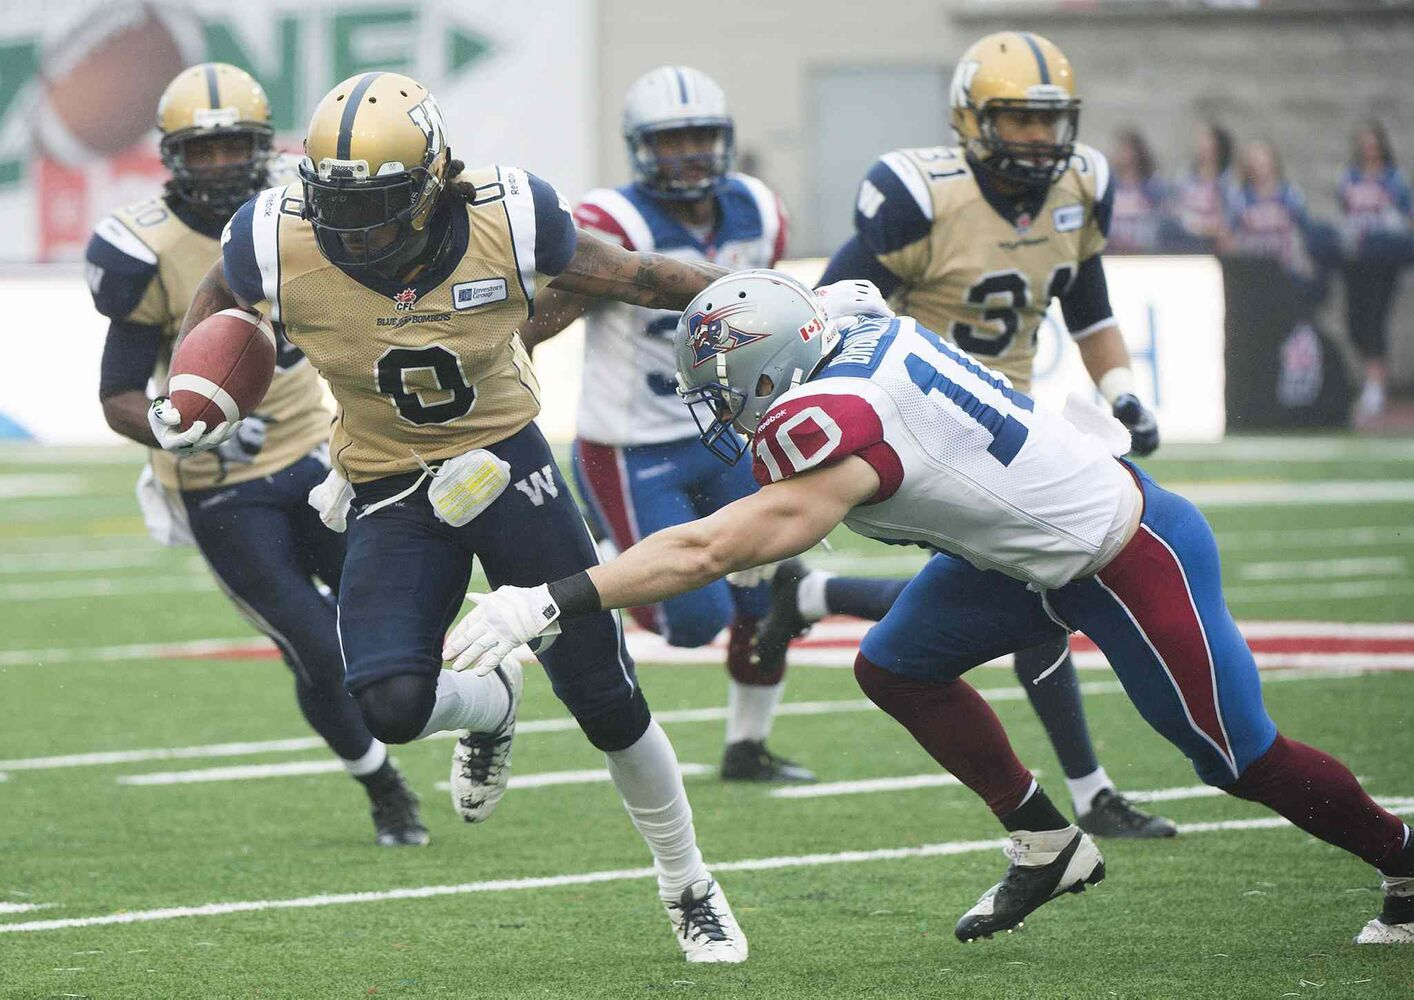 Winnipeg Blue Bombers' Johnny Sears, left, is tackled by Montreal Alouettes' Marc-Olivier Brouillette during first half CFL football action in Montreal Monday. (Graham Hughes / TheCanadian Press)